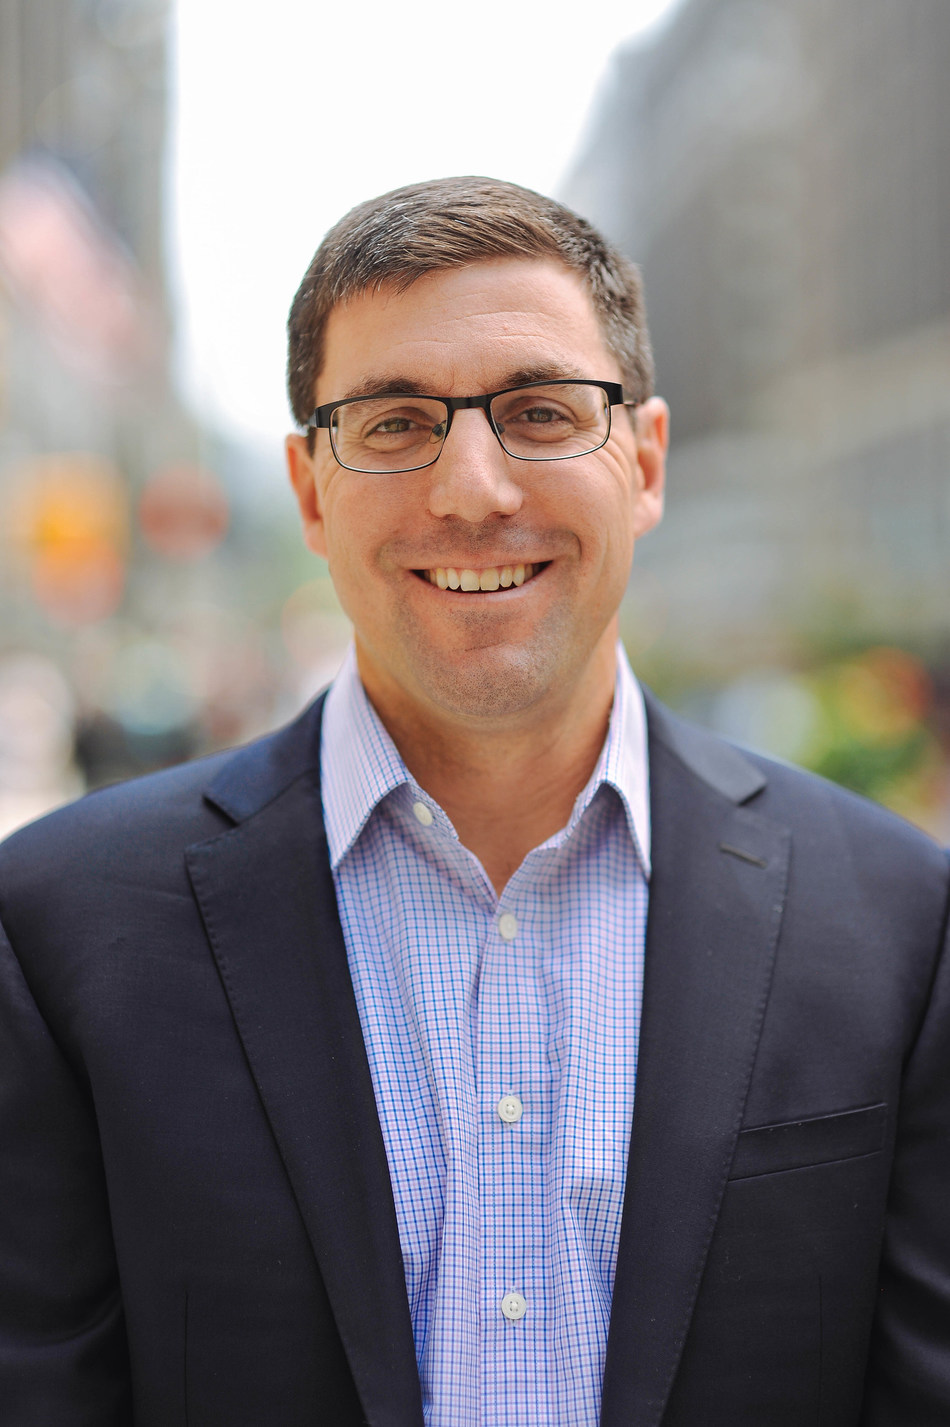 James Hobson to join Attune, data-enabled company established by AIG, Hamilton Insurance Company and Two Sigma